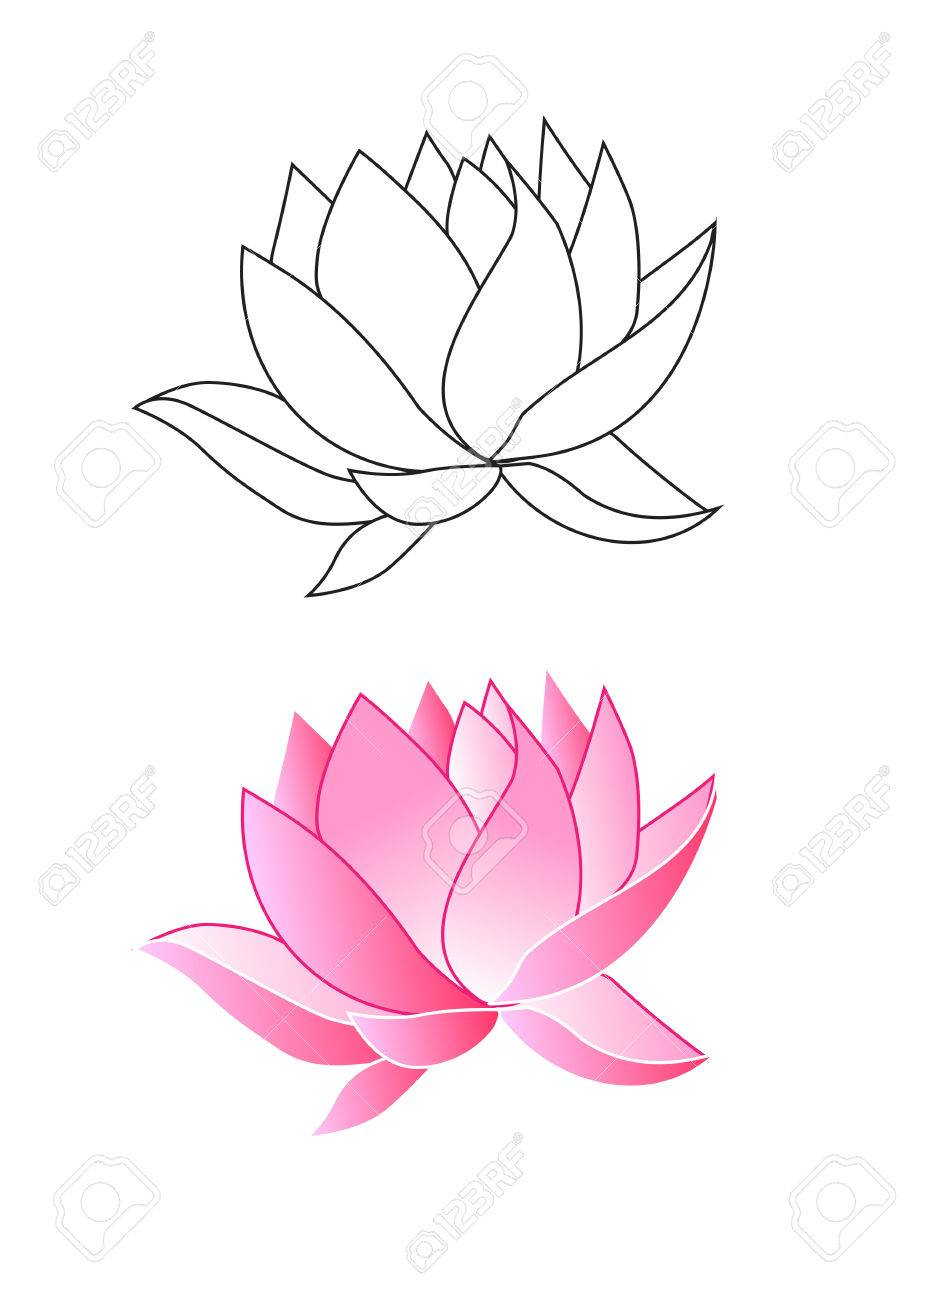 Pink lotus flowers coloring vector illustration royalty free pink lotus flowers coloring vector illustration stock vector 60146330 mightylinksfo